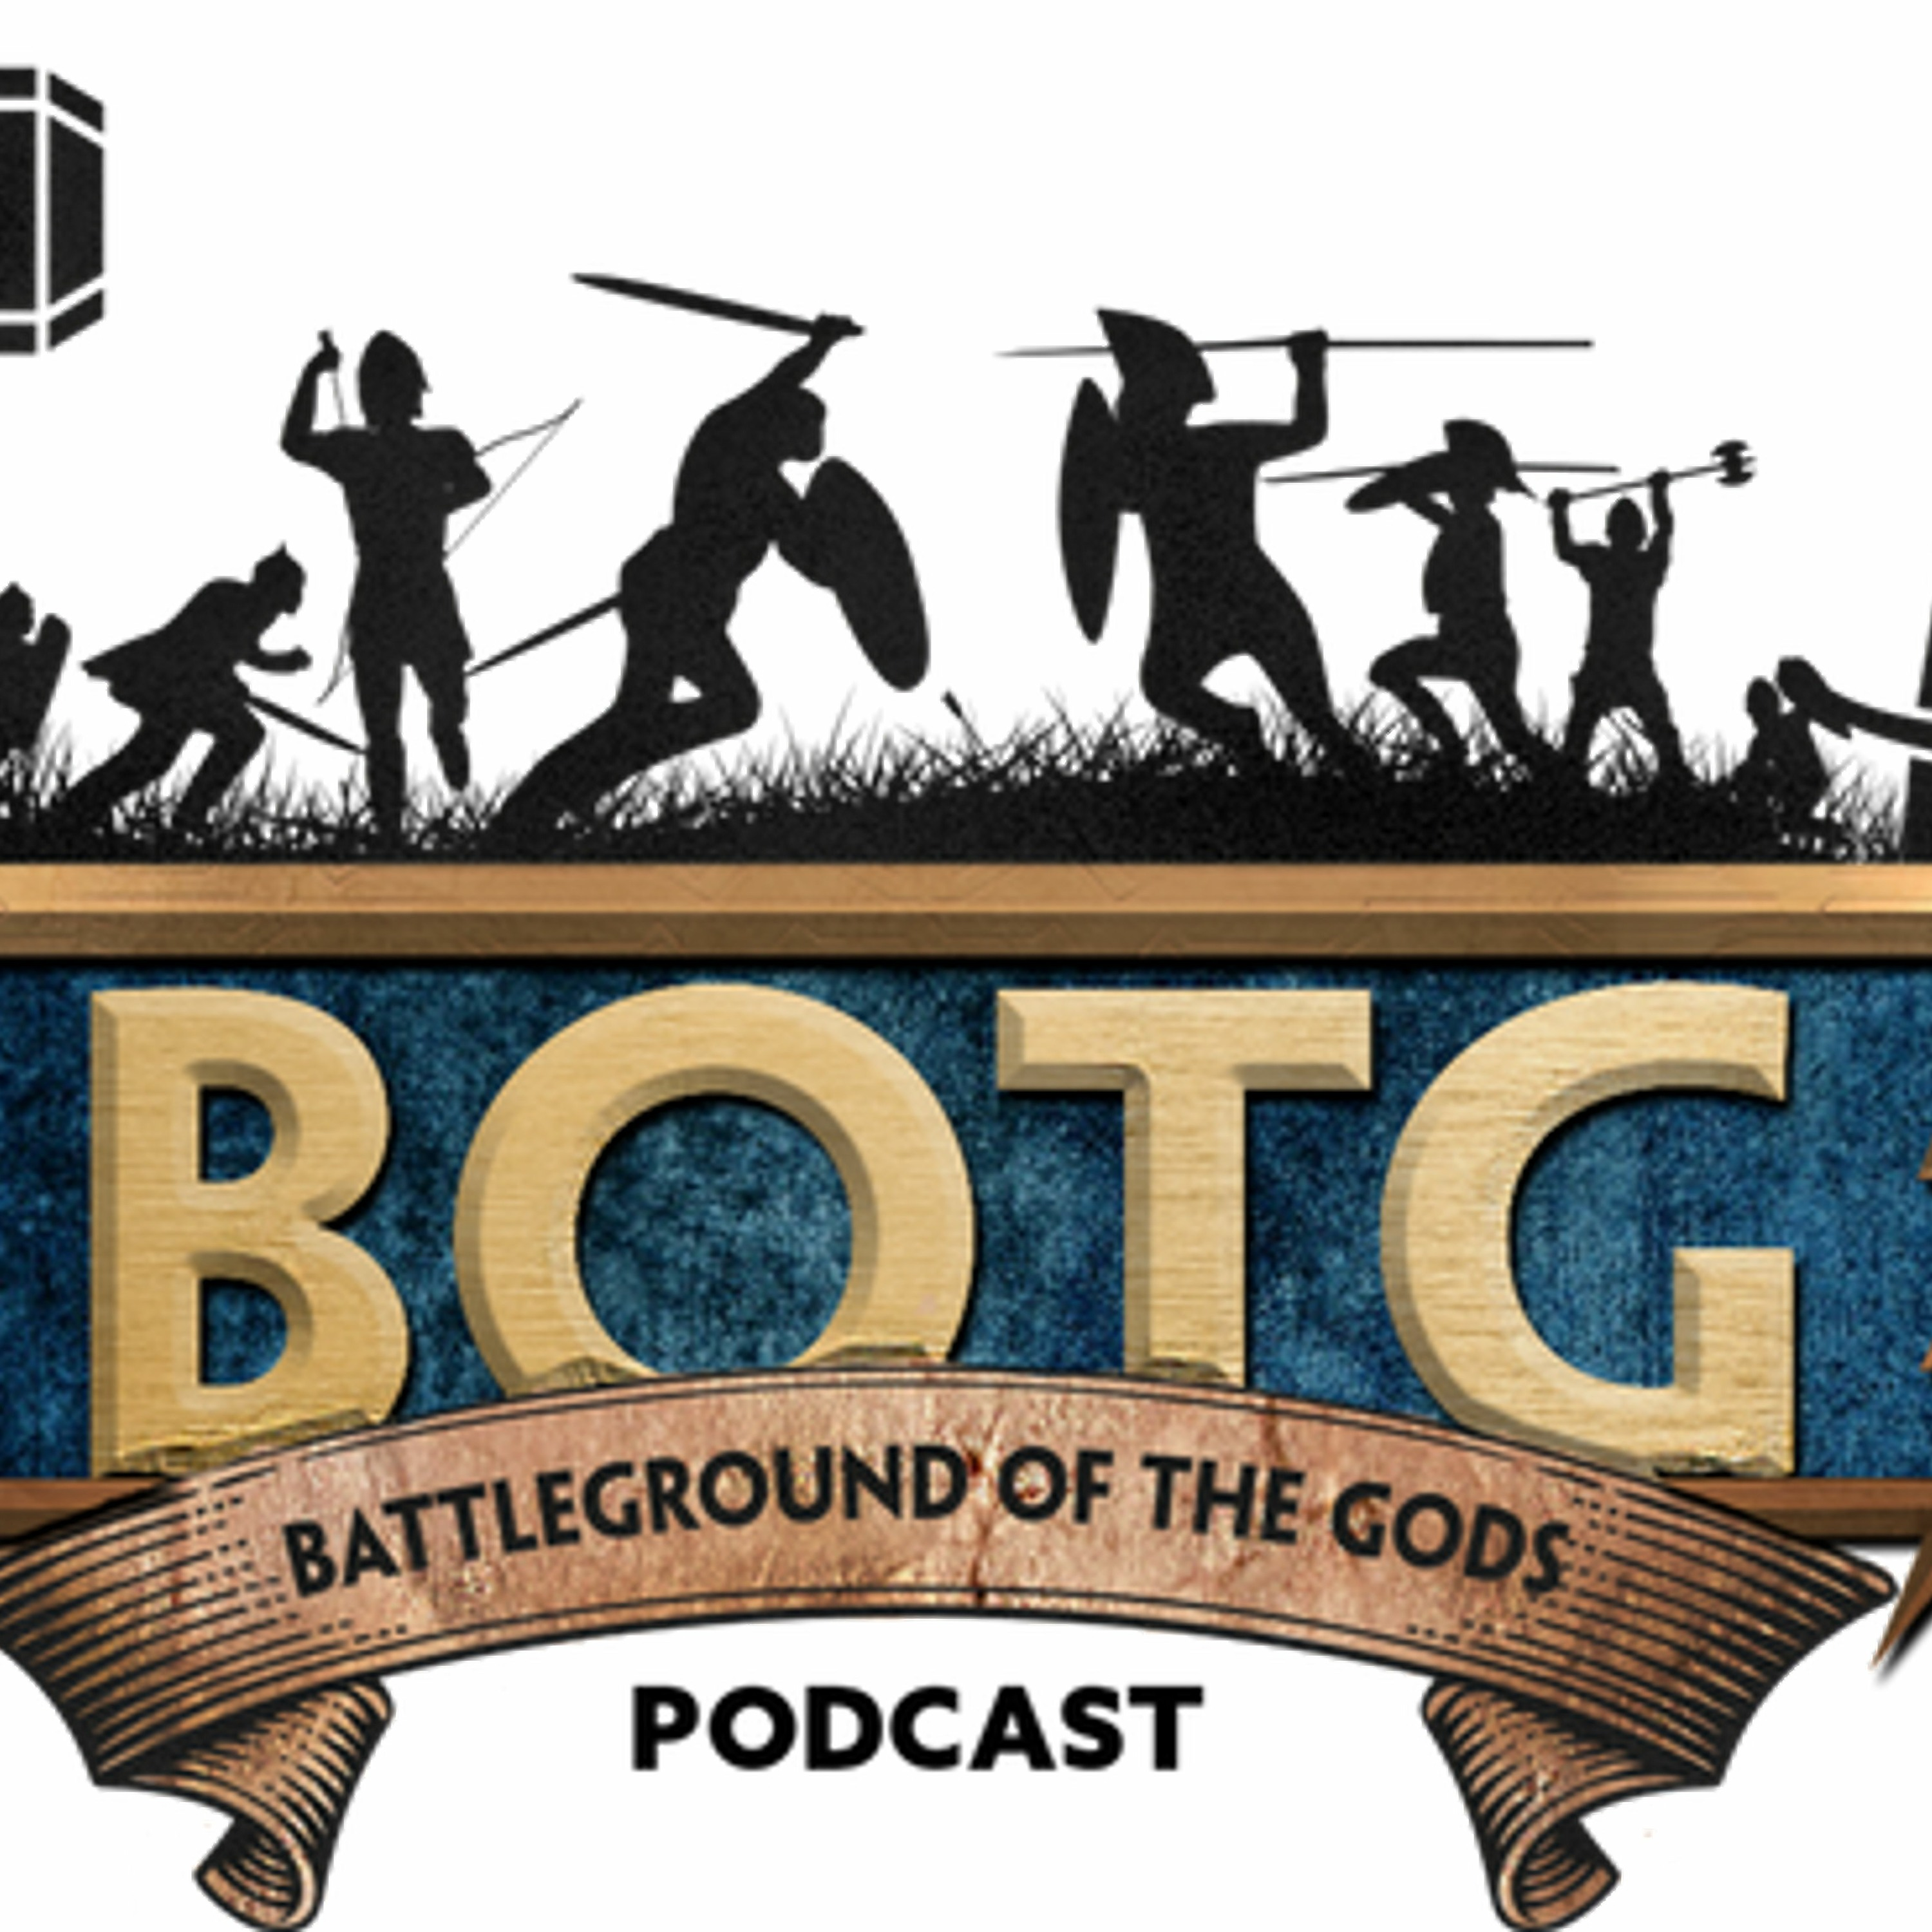 Ep 168 - These Boots Were Made For Walkin'